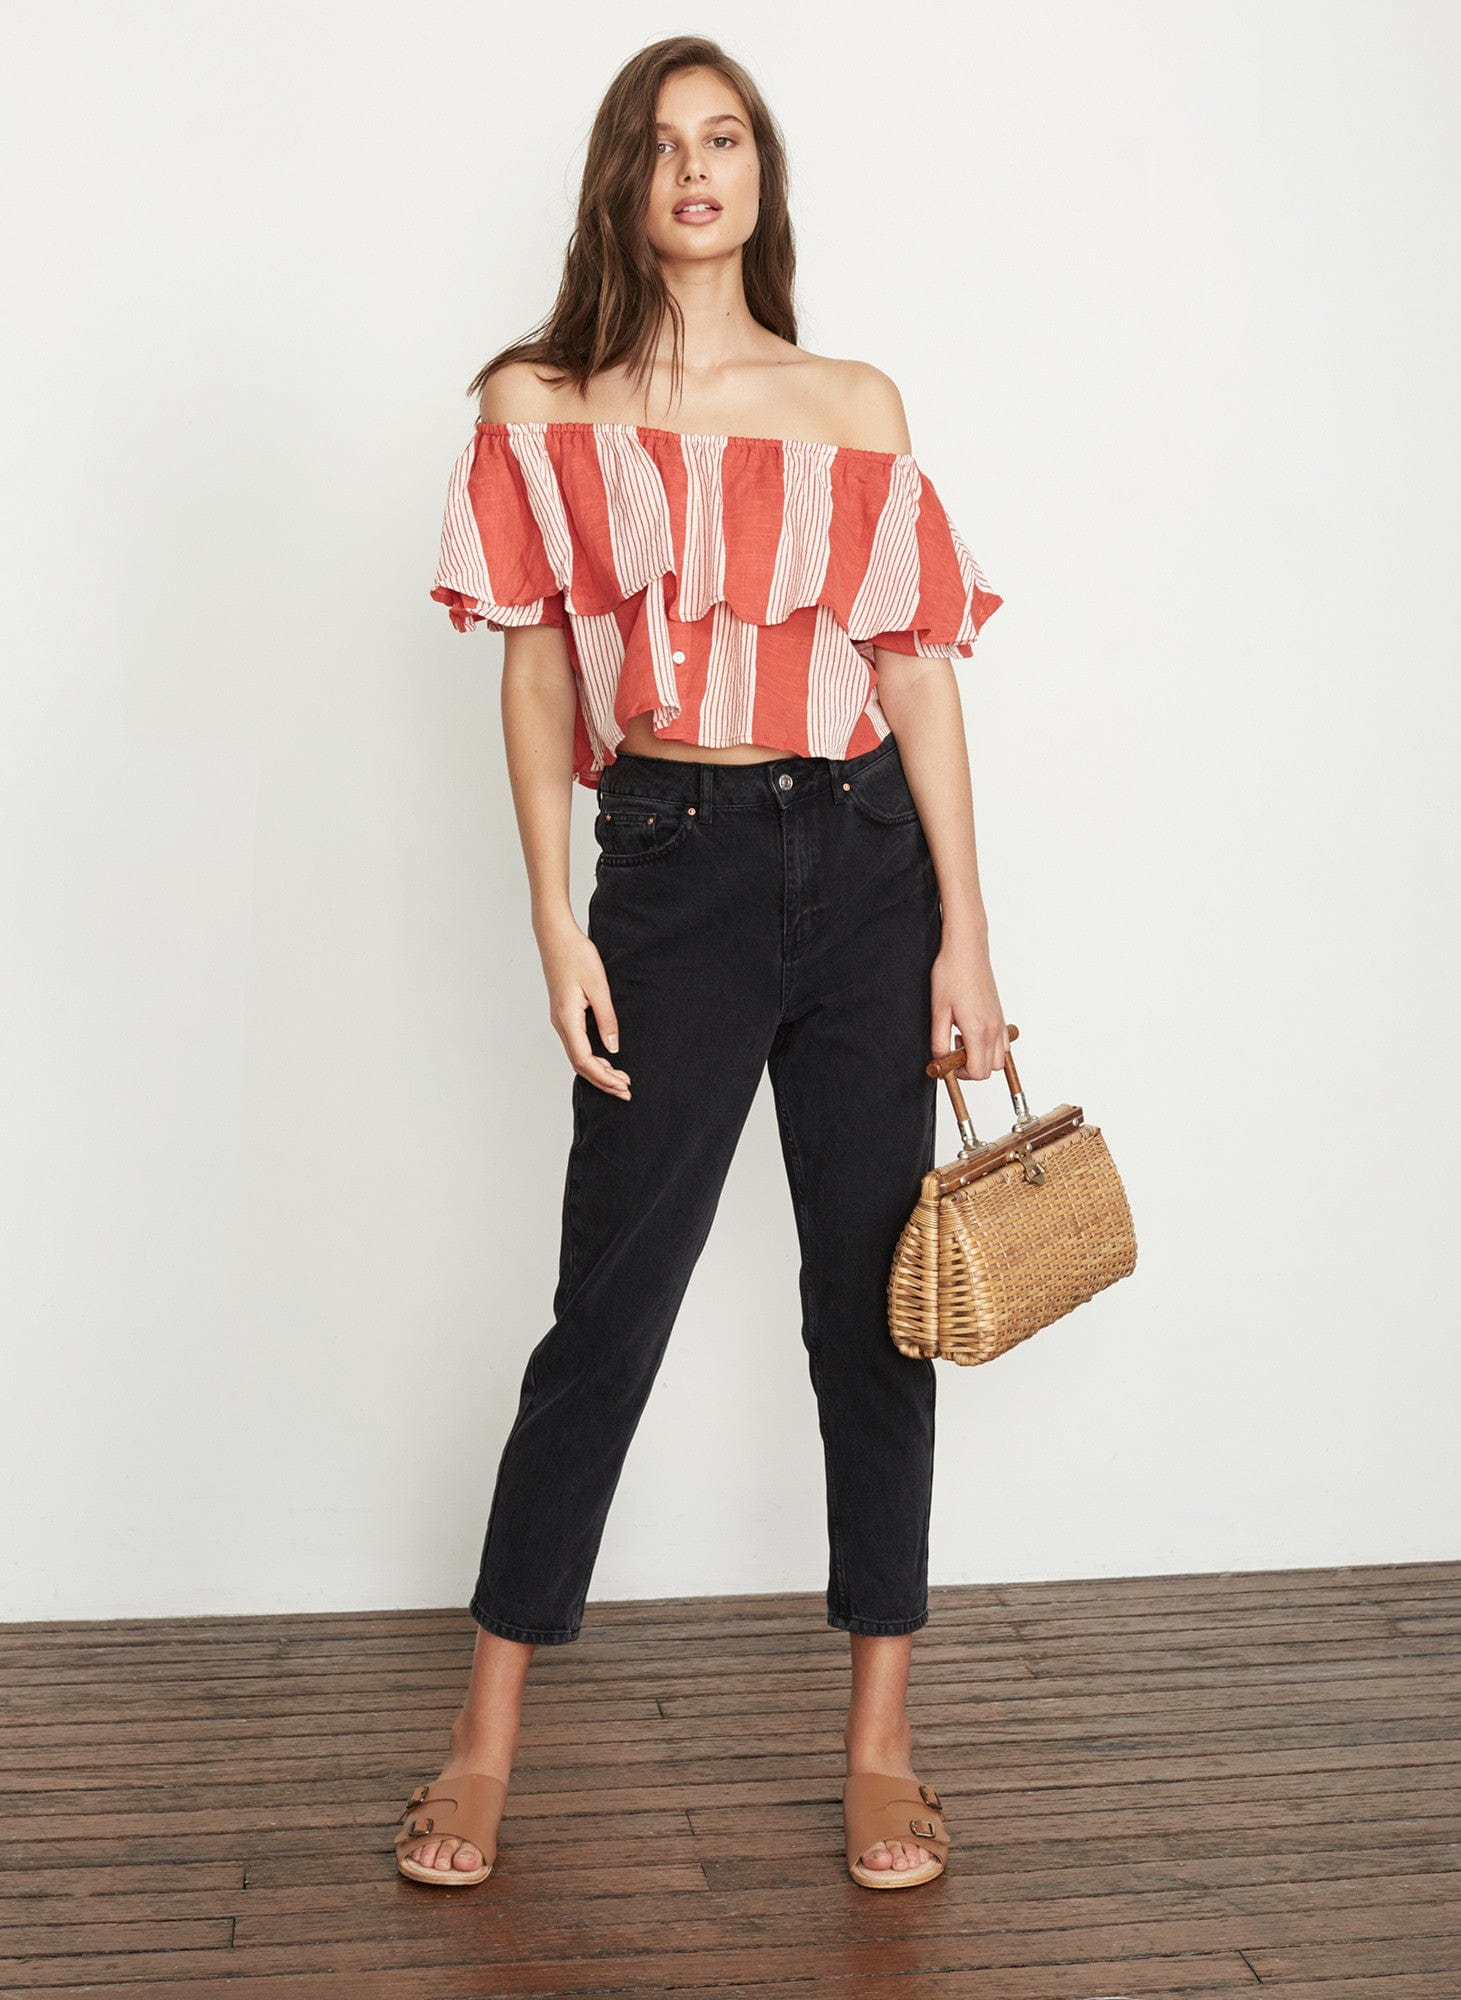 PICNIC STRIPE PRINT - SALERNO TOP